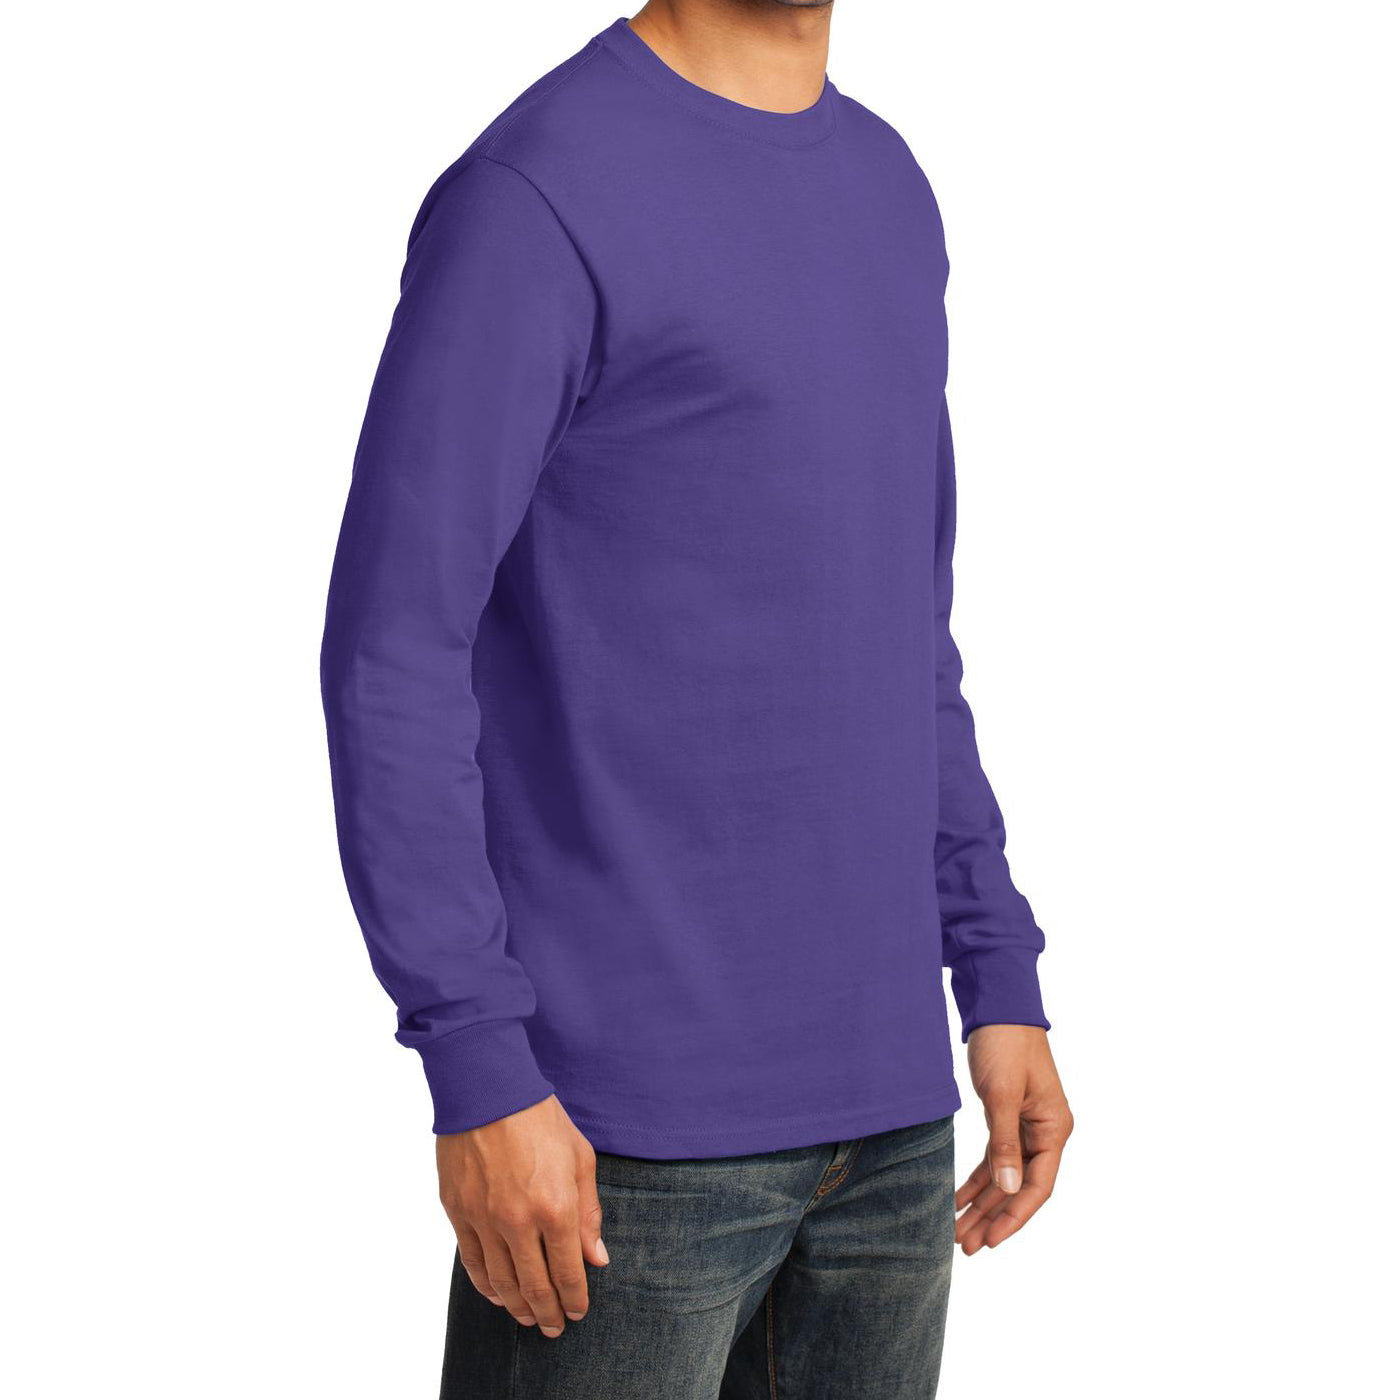 Men's Long Sleeve Essential Tee - Purple - Side